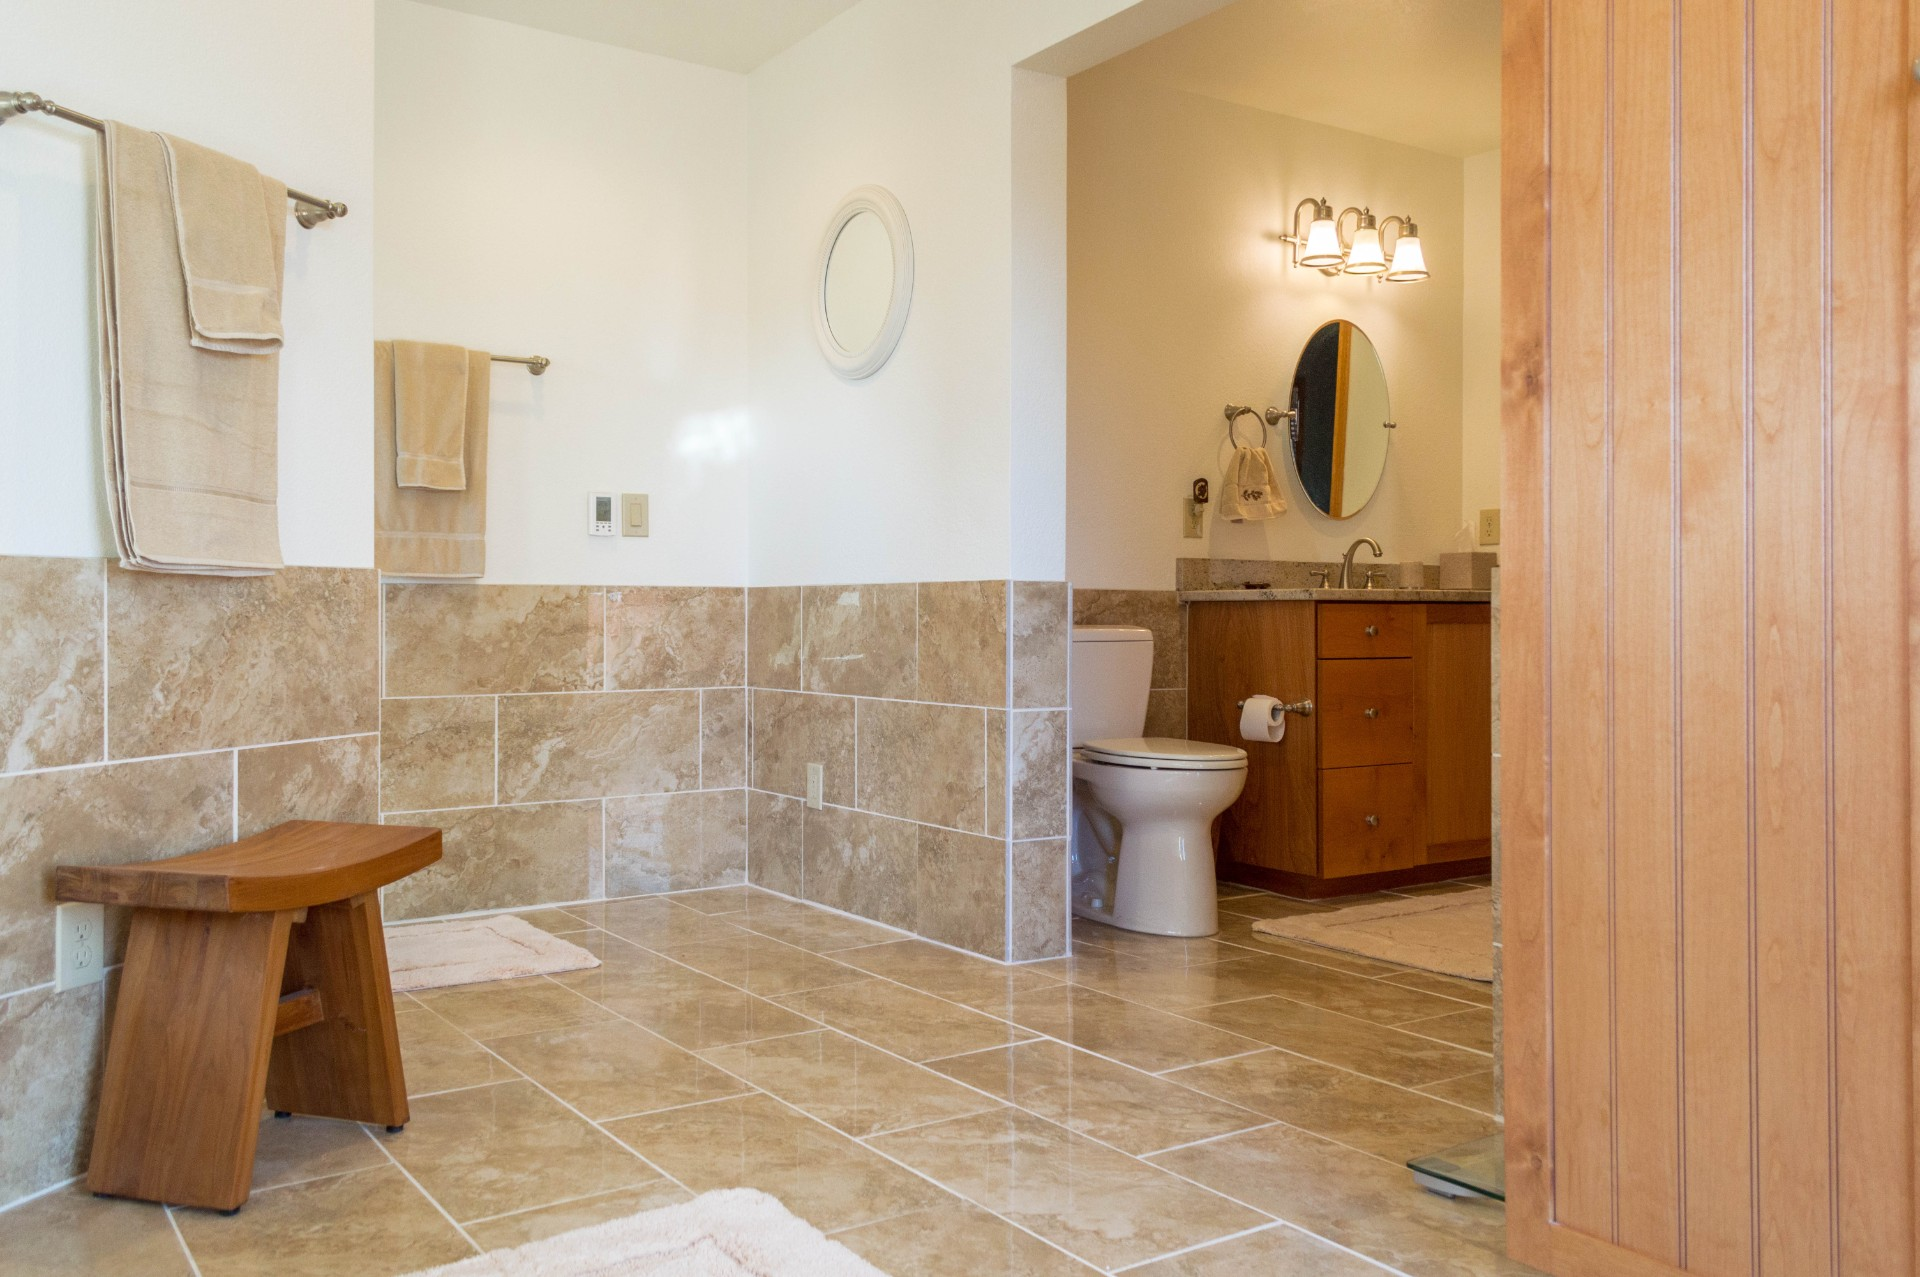 Completed bathroom and closet in a custom residential home.